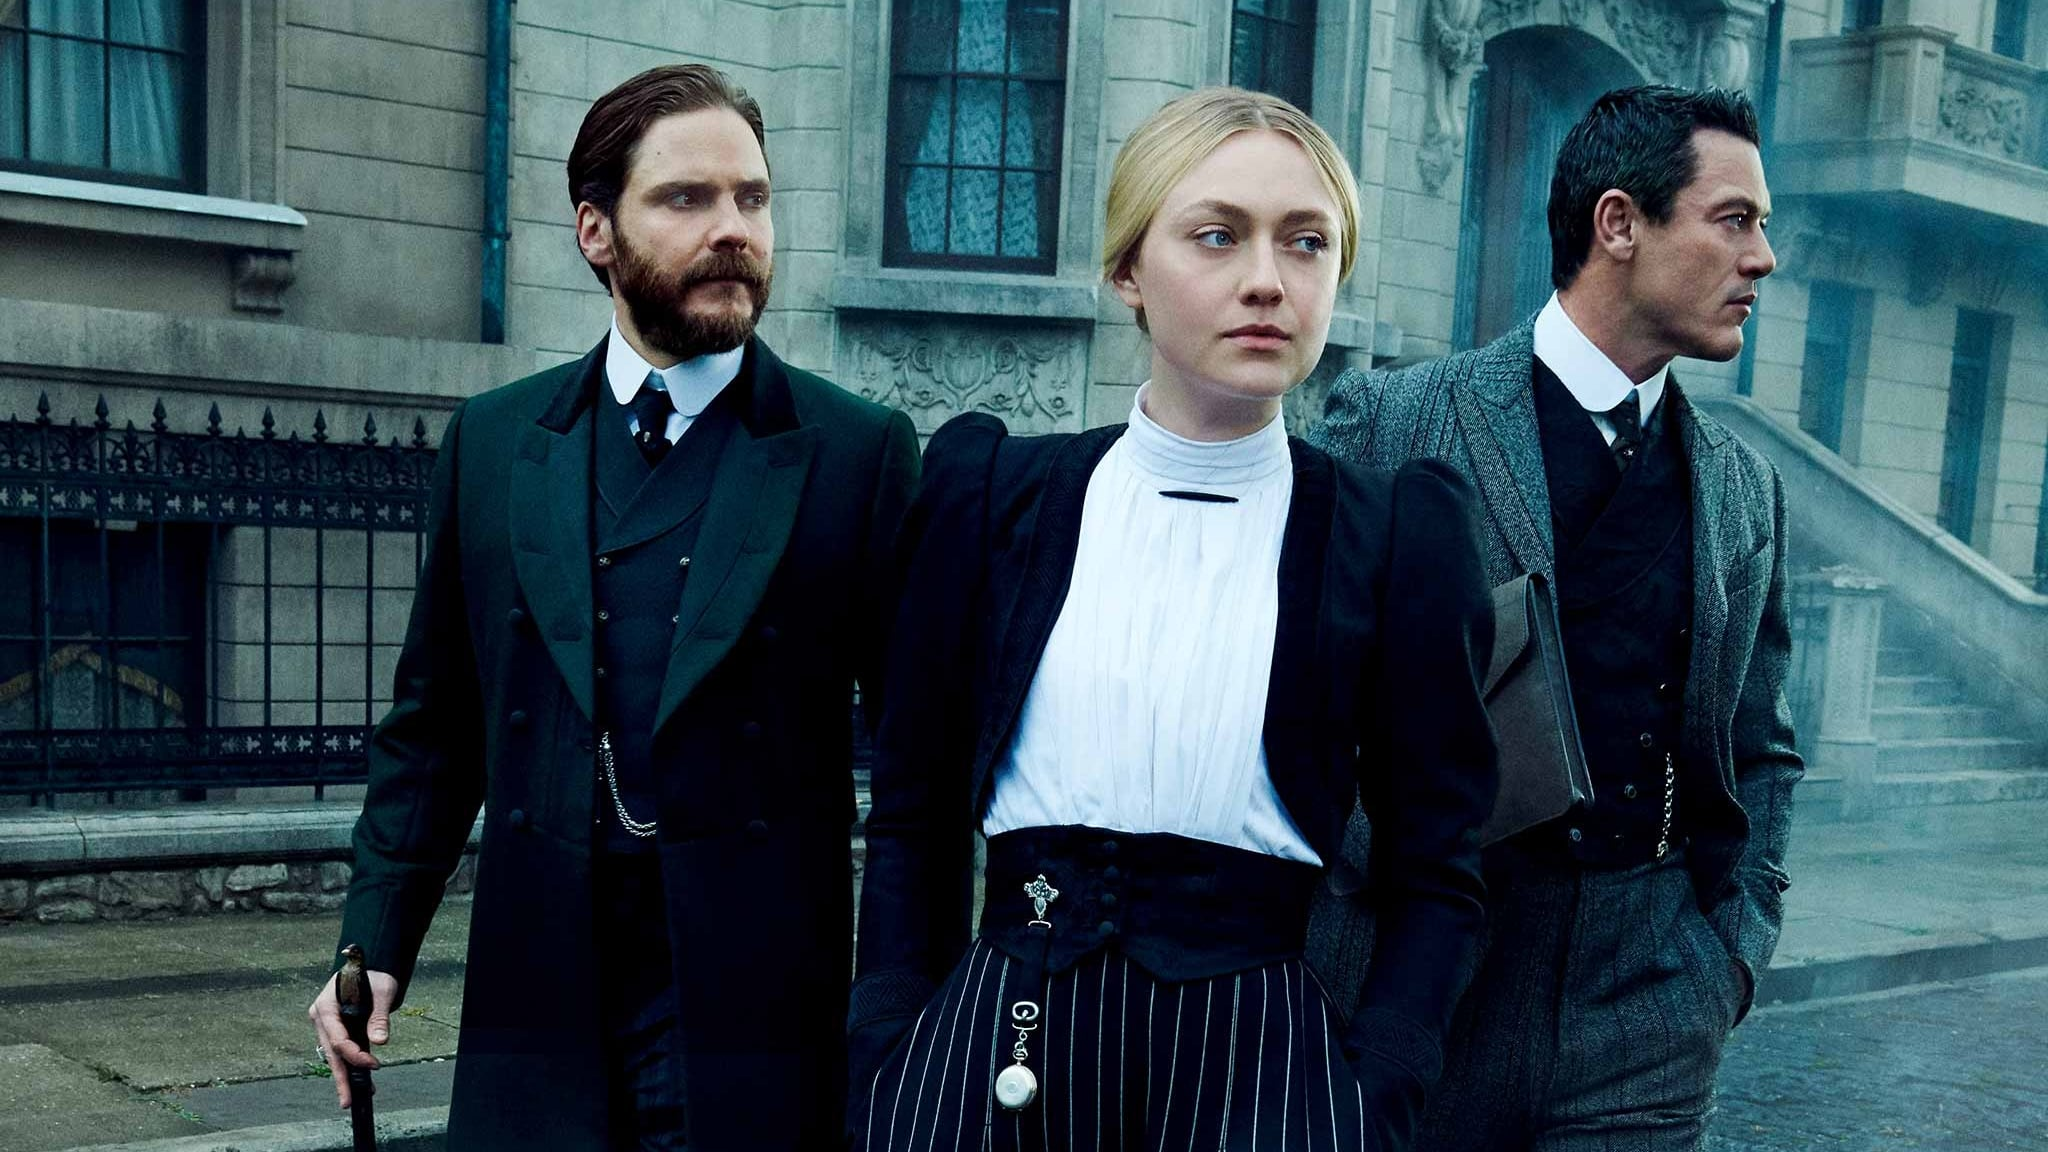 The Alienist: Angel of Darkness to release sooner